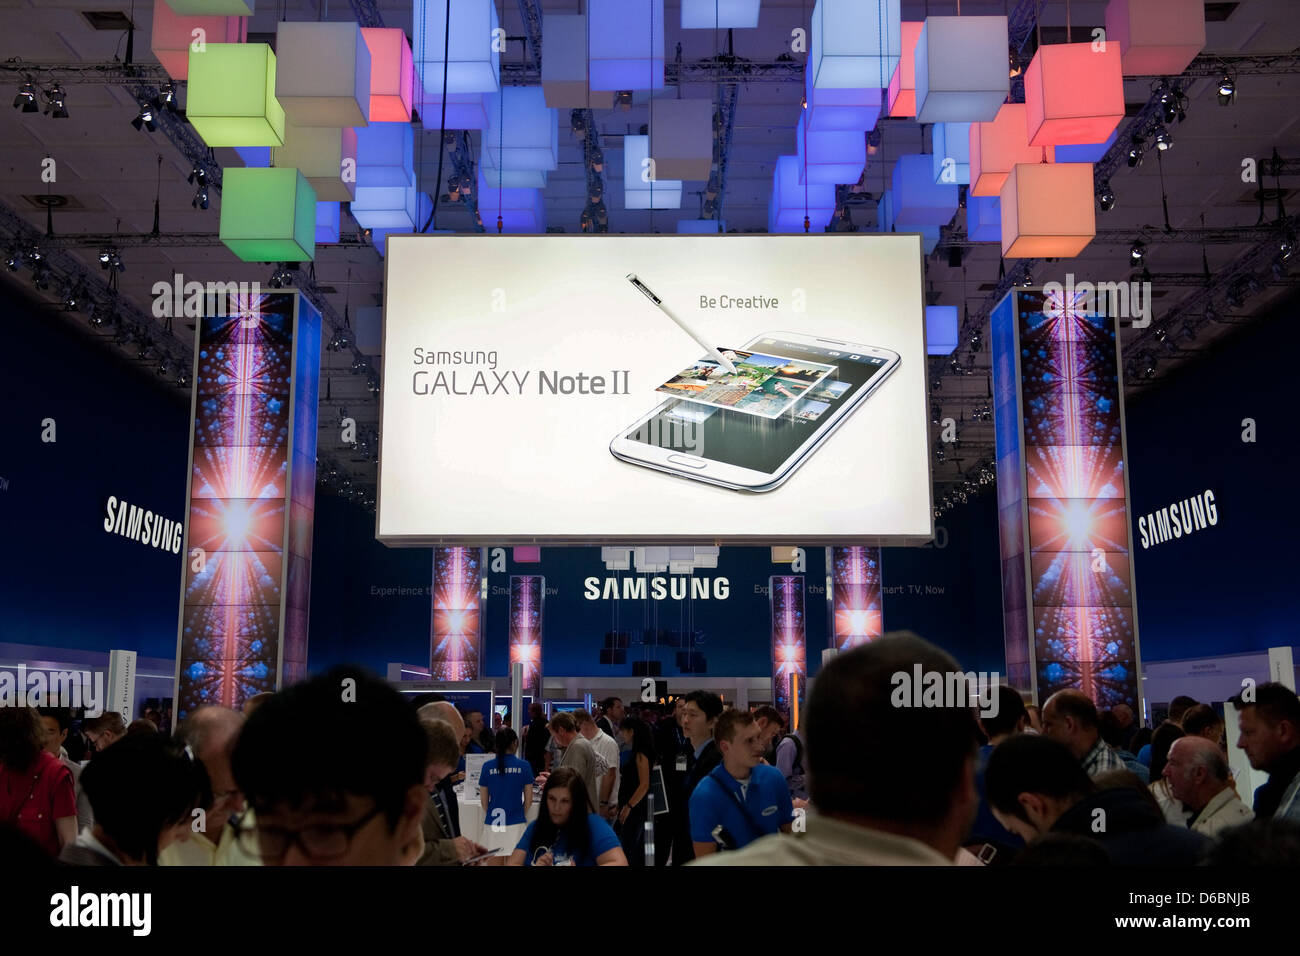 The Booth Of Korean Electronics Company Samsung At Consumer Stock Photo Alamy